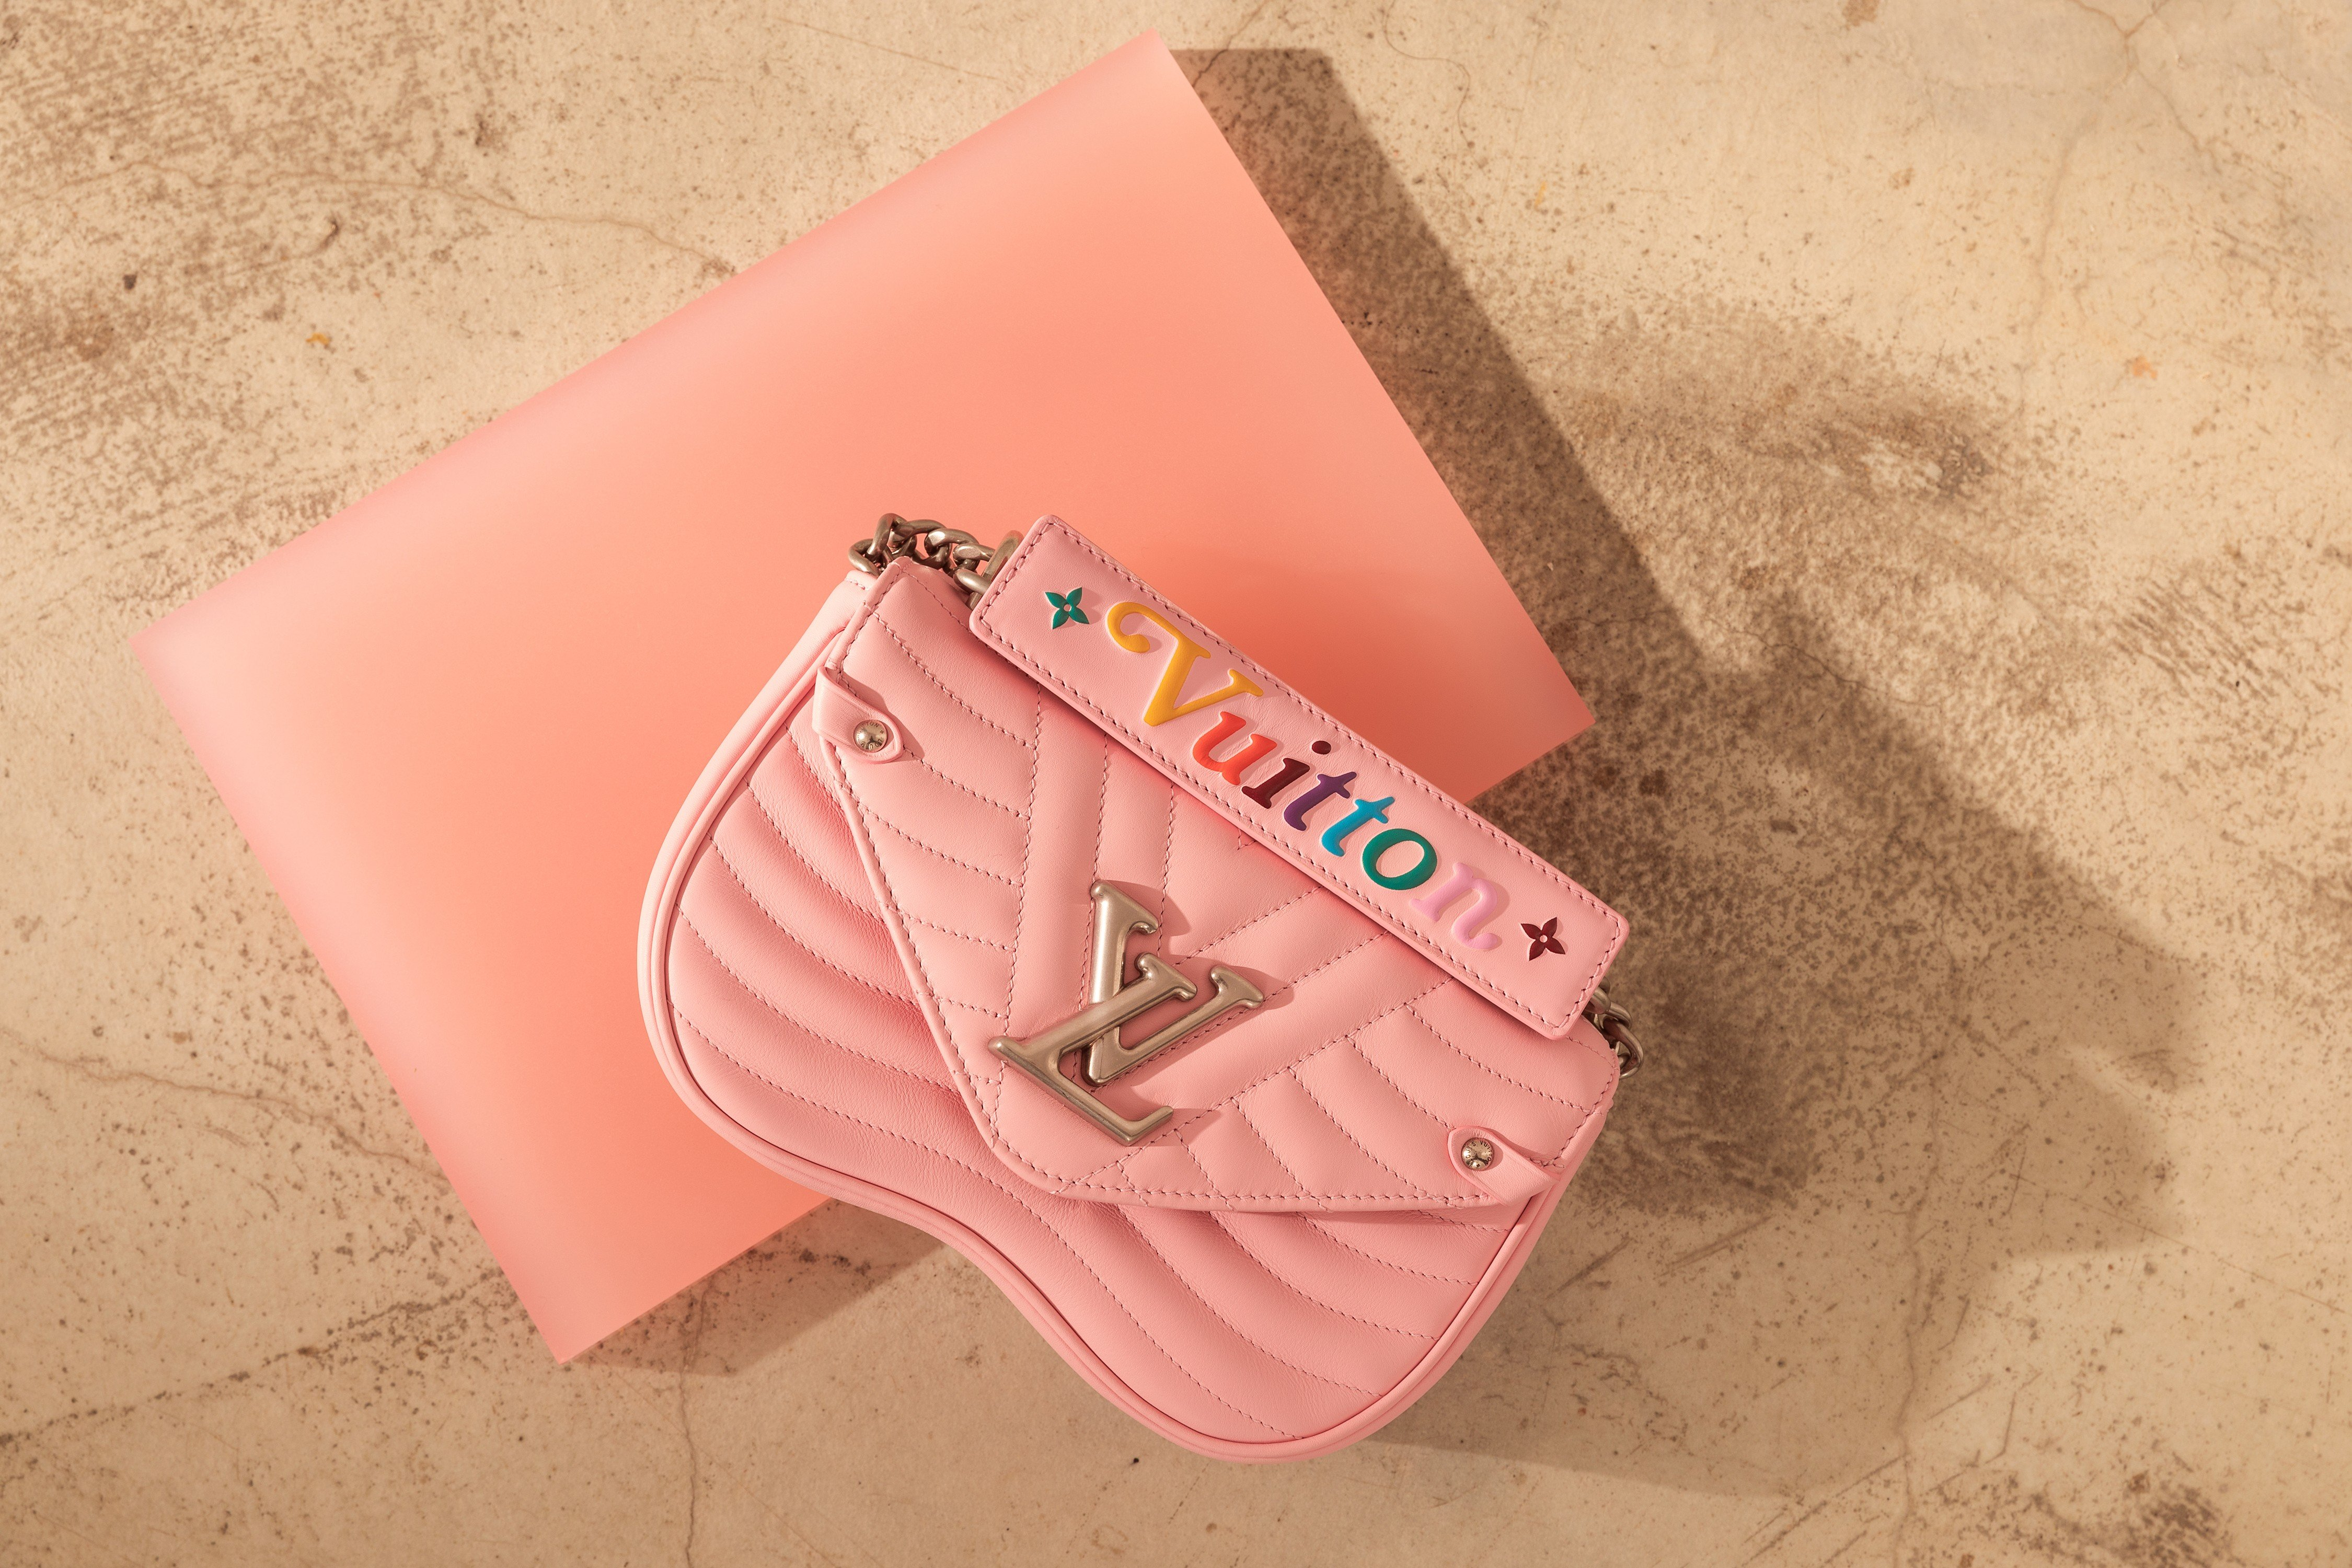 bcade2c4978 STYLE Edit: Louis Vuitton's youthful, vibrant New Wave bag ...